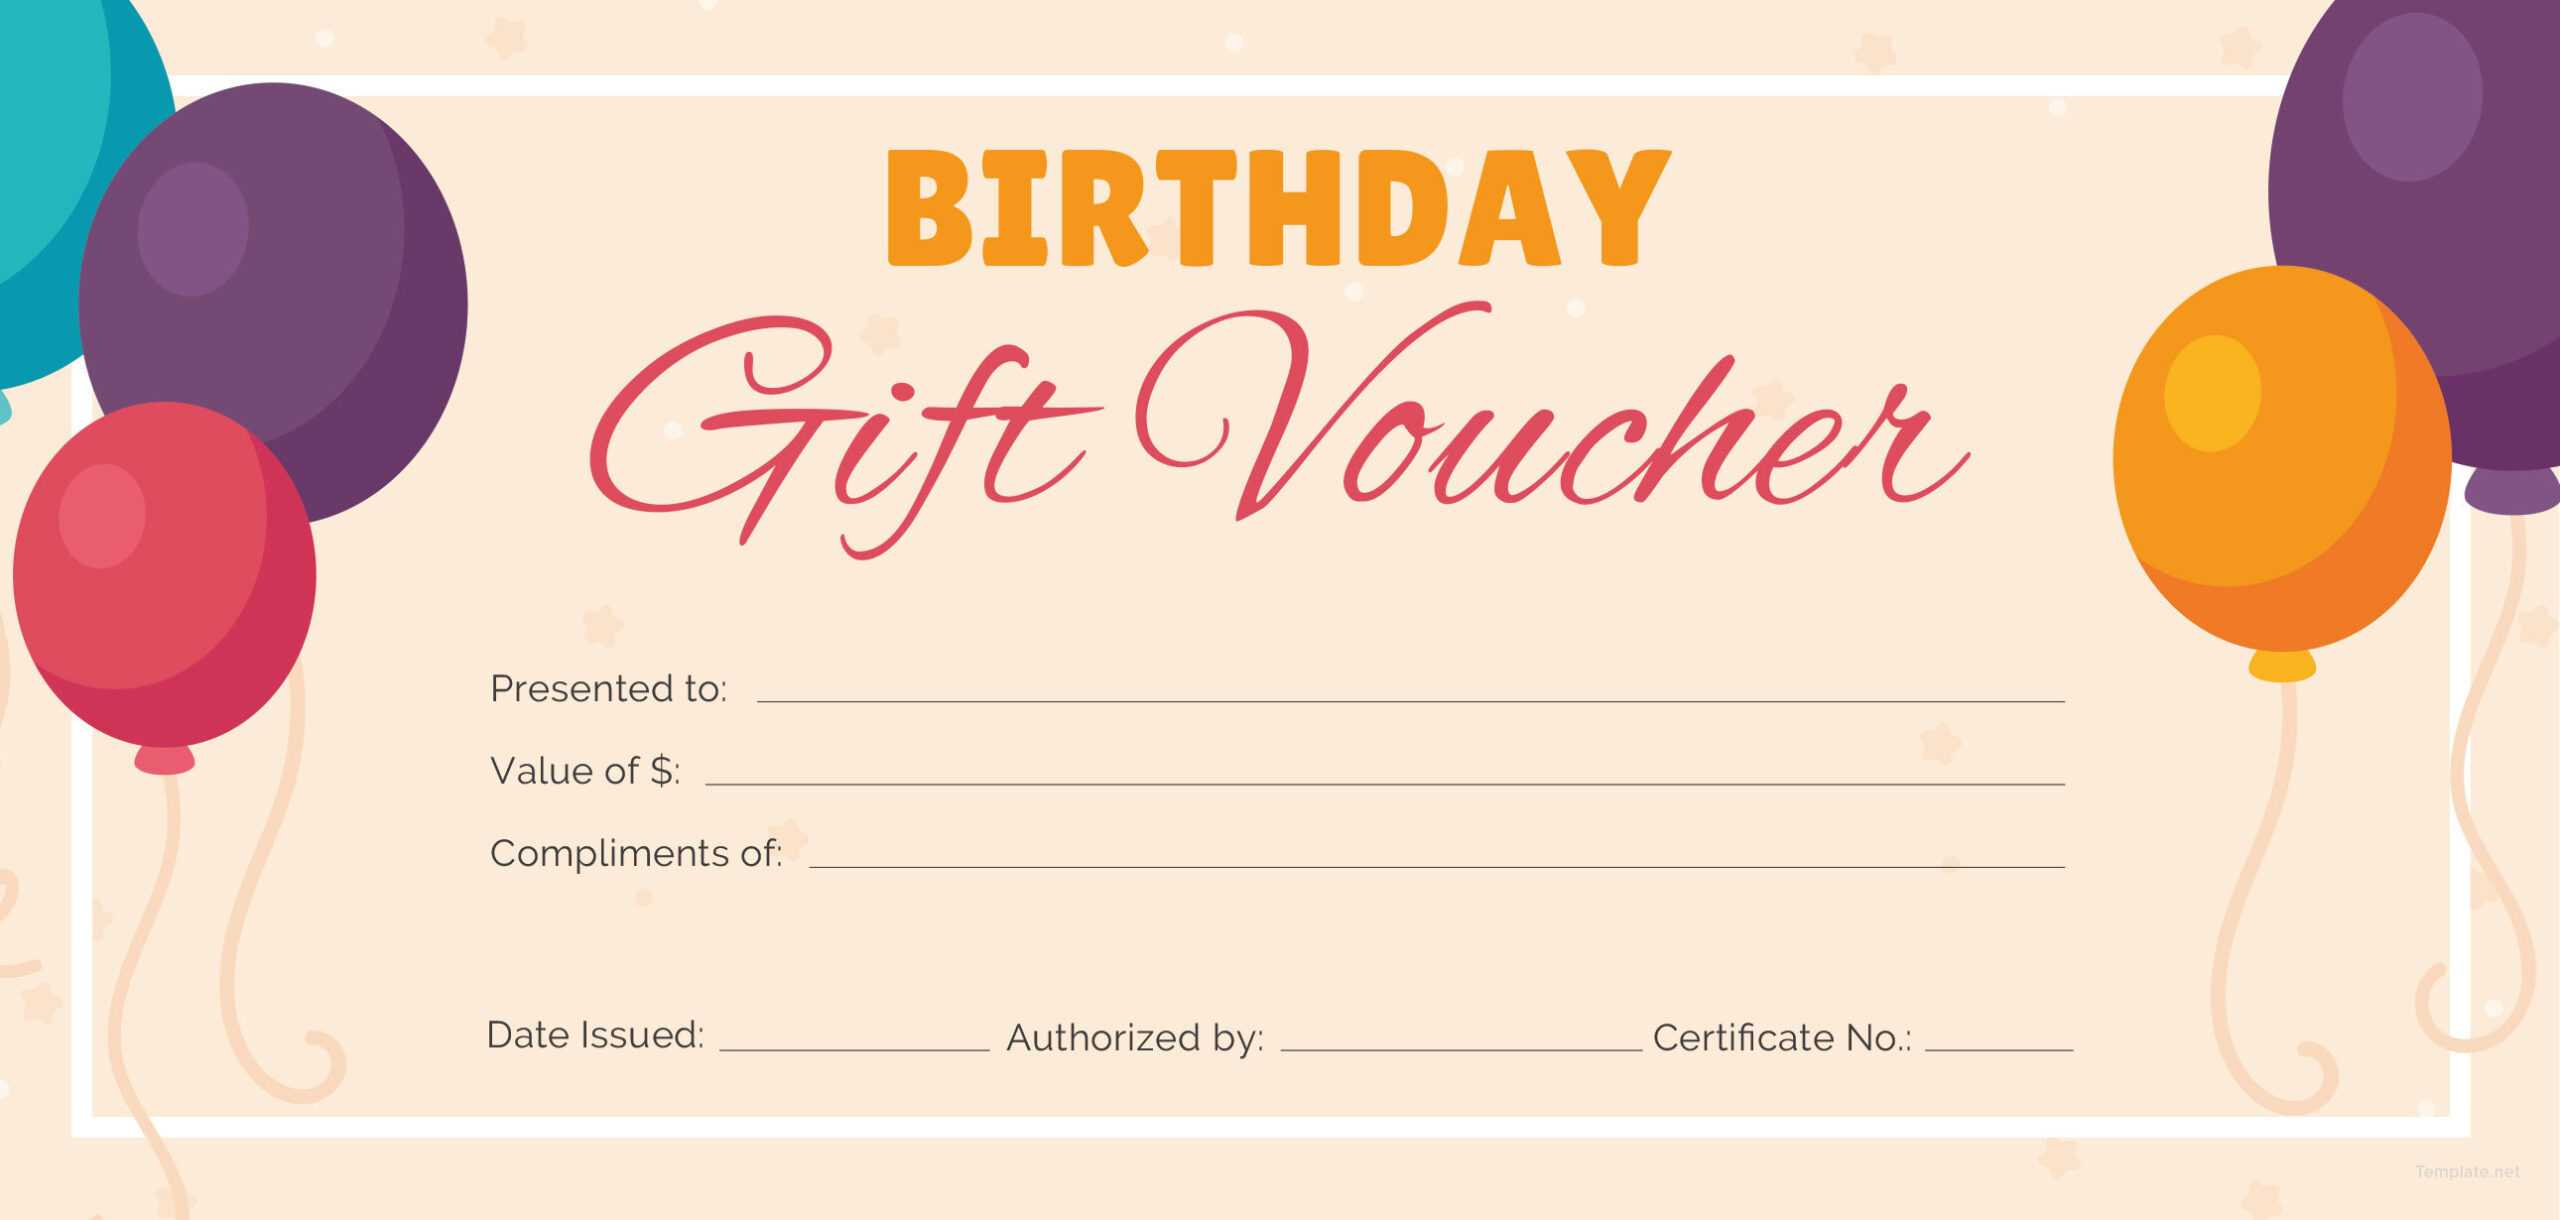 Birthday Gift Certificate Template Free Printable With Regard To Printable Gift Certificates Templates Free